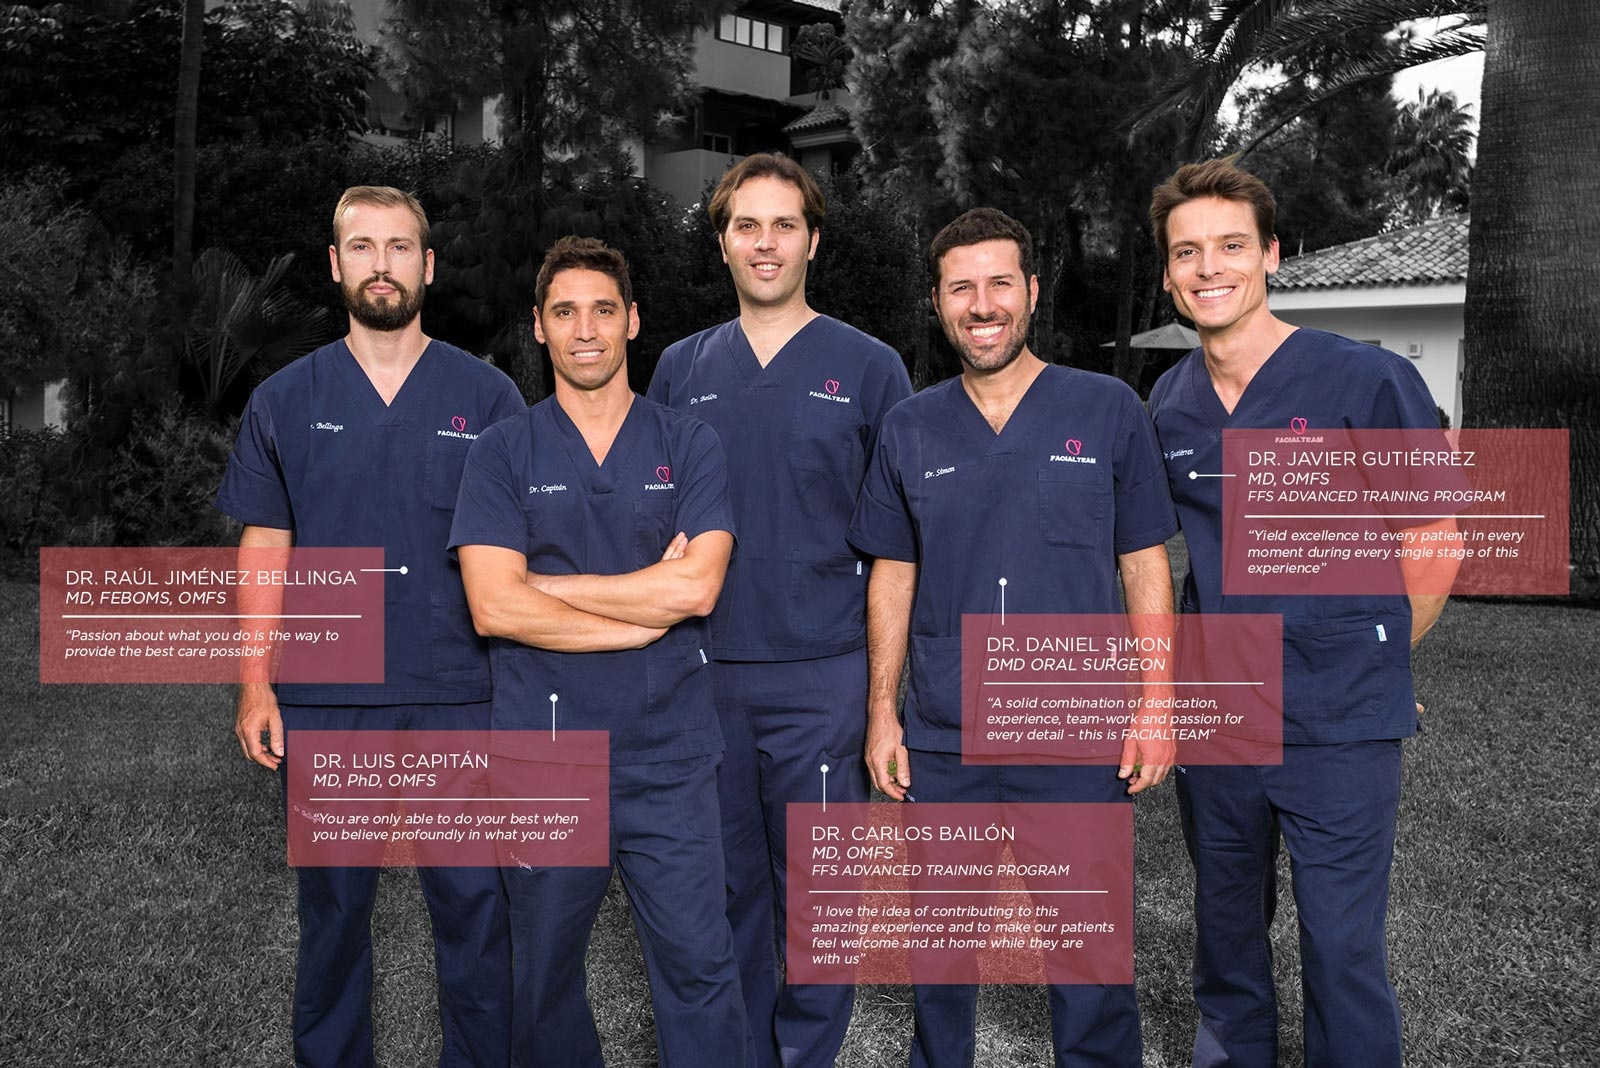 FACIALTEAM | FFS Surgeons in Europe